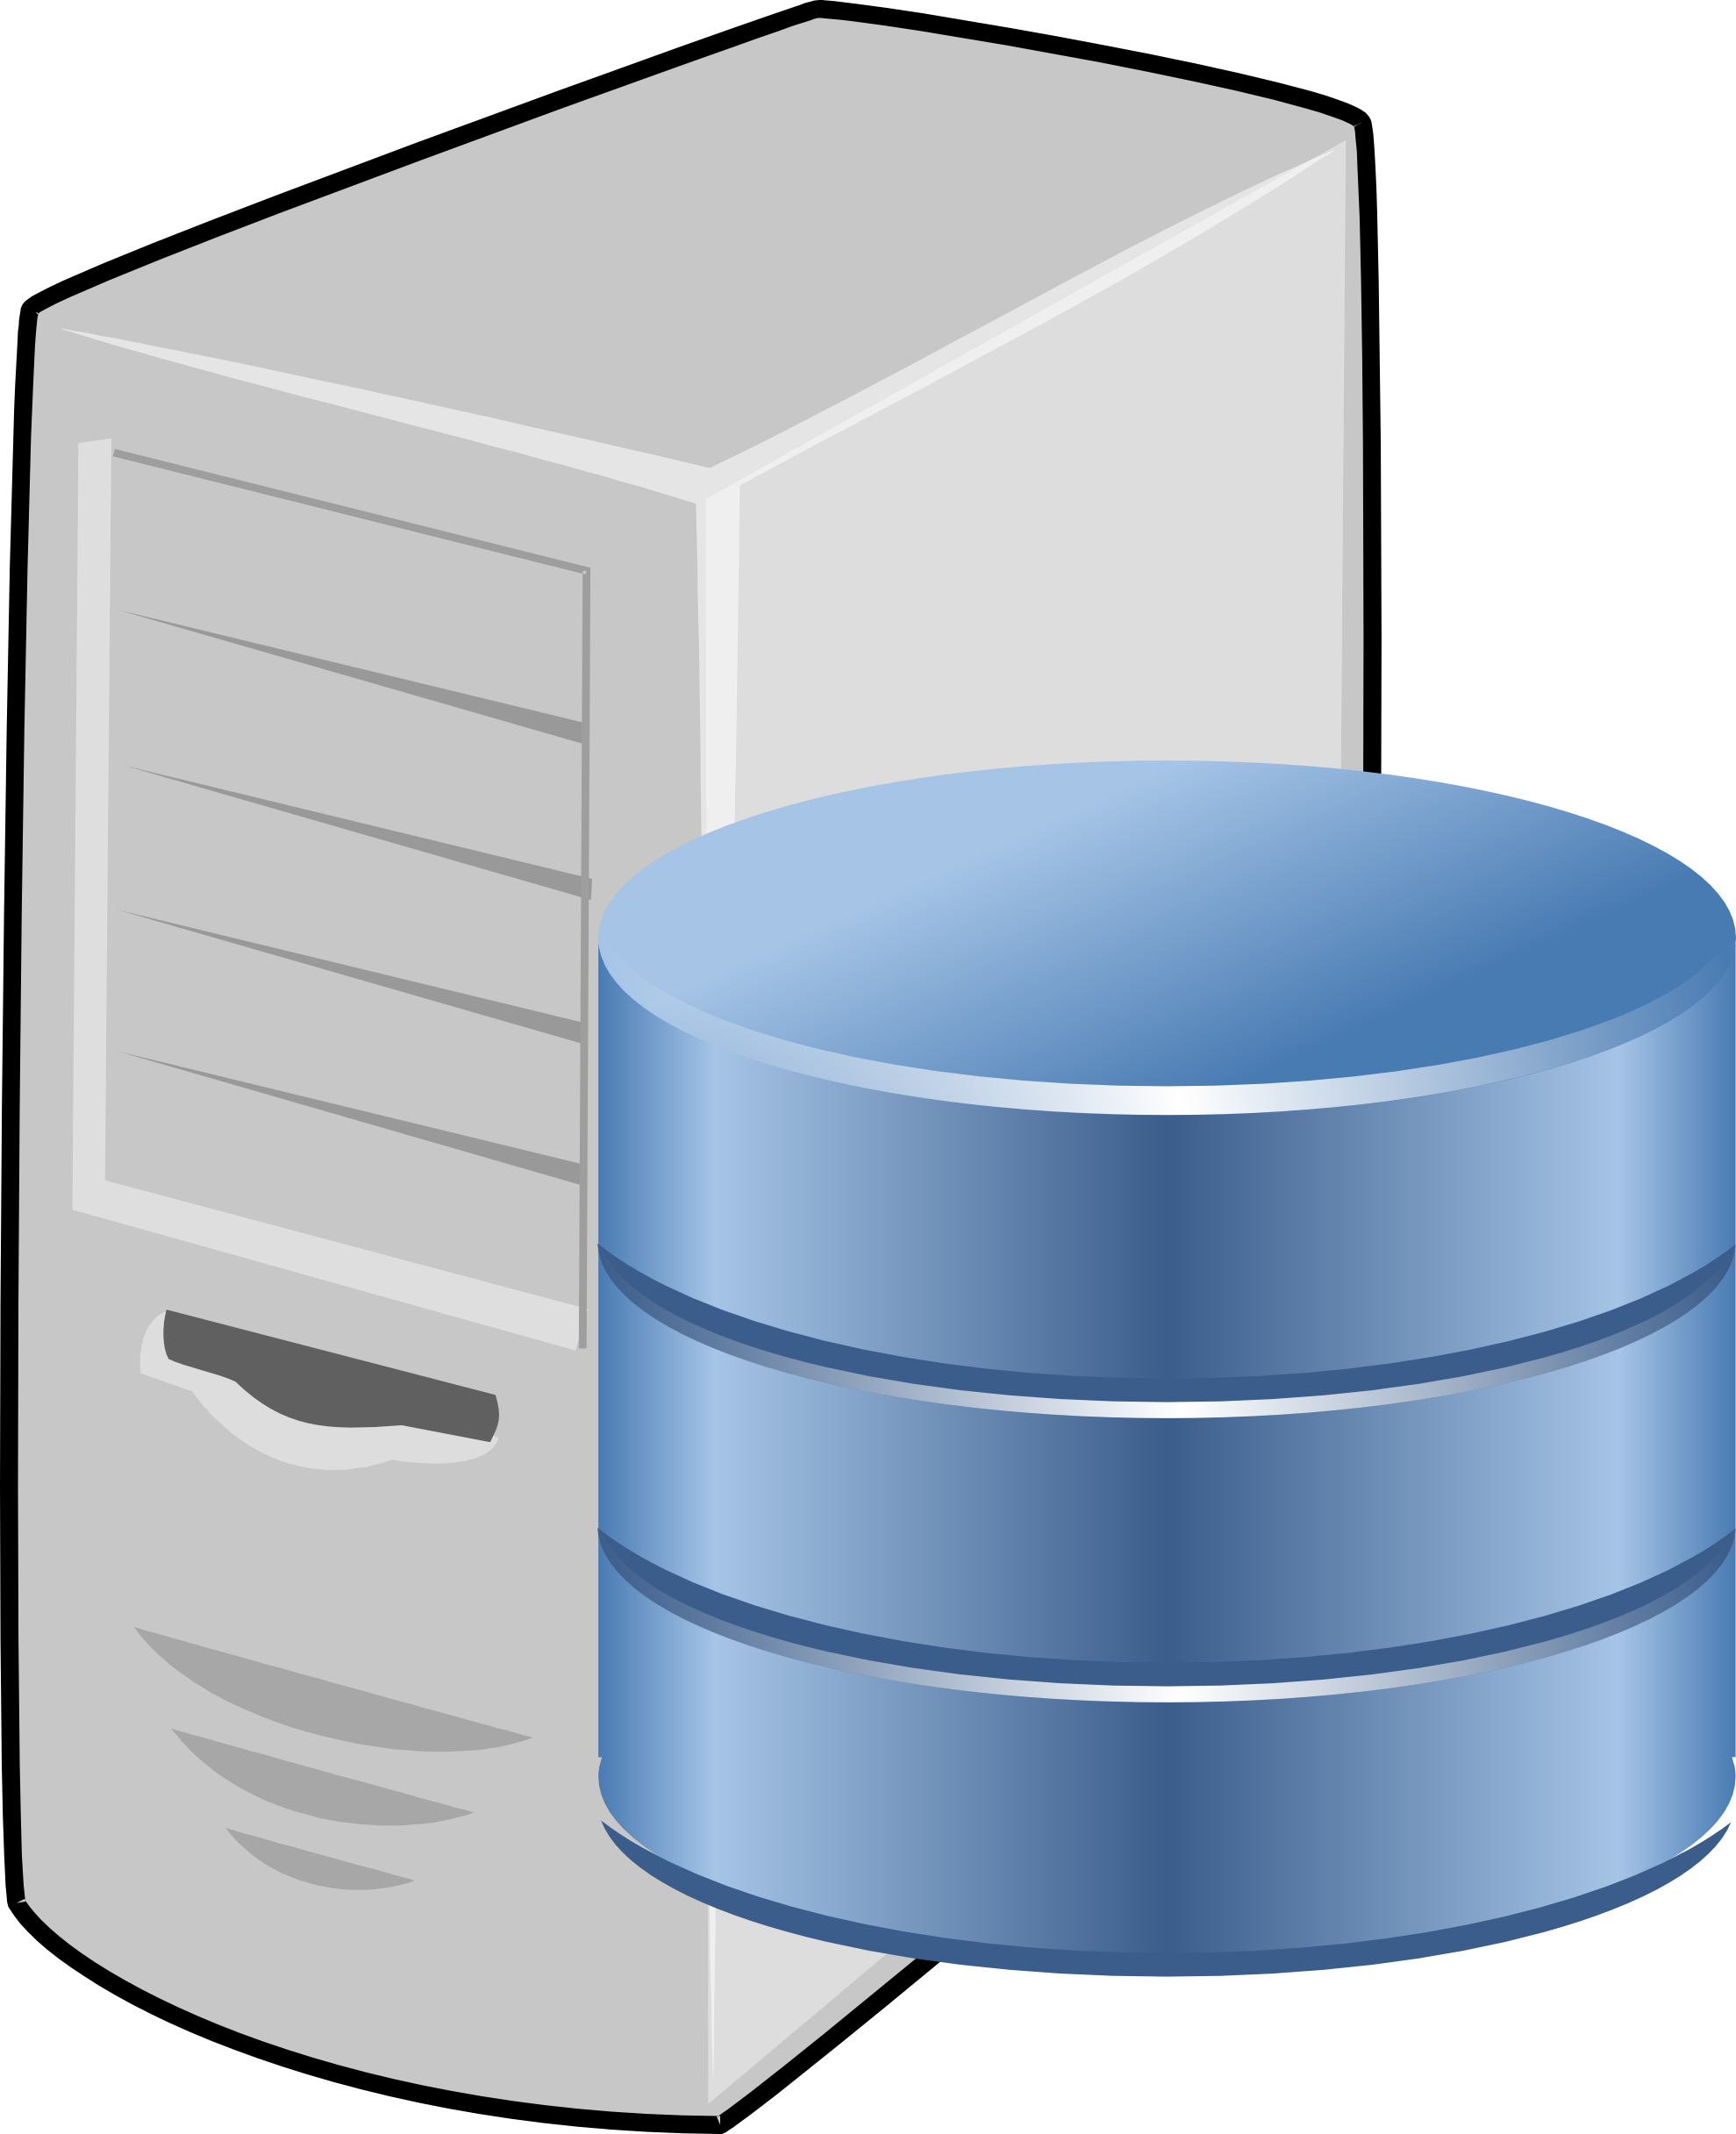 Rules access external data by querying database